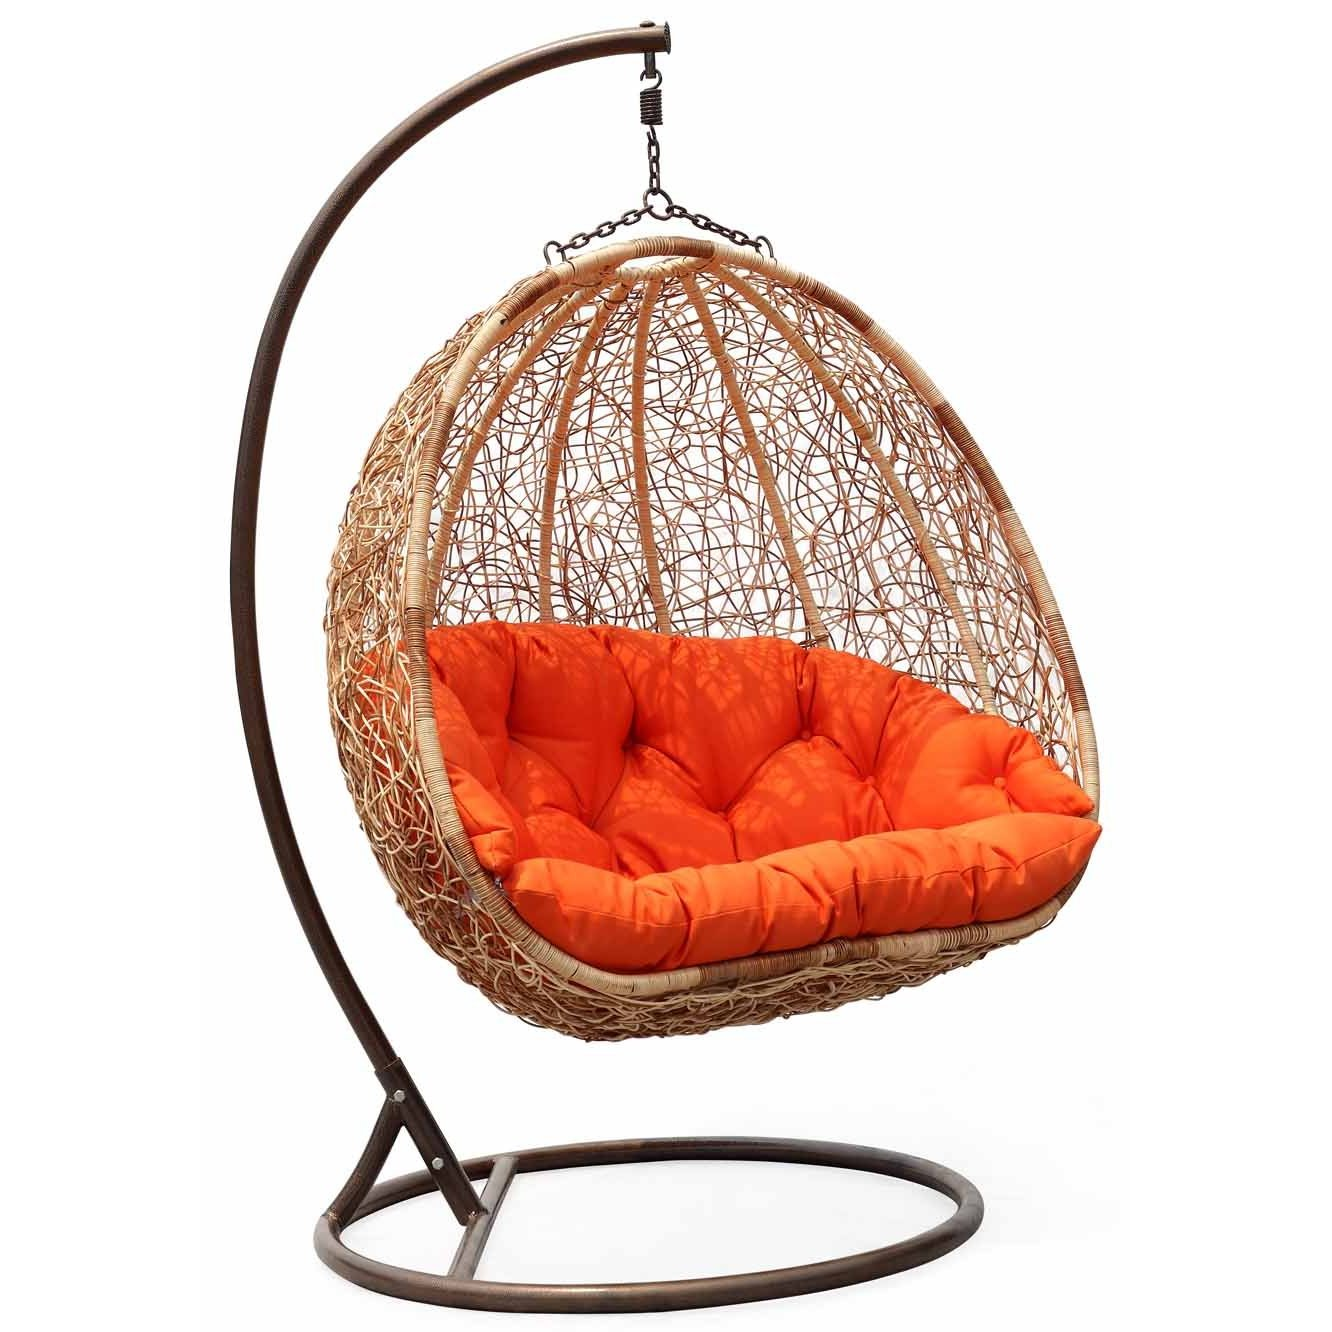 pier 1 chair swing toddler upholstered rocking daly designs outdoor furniture